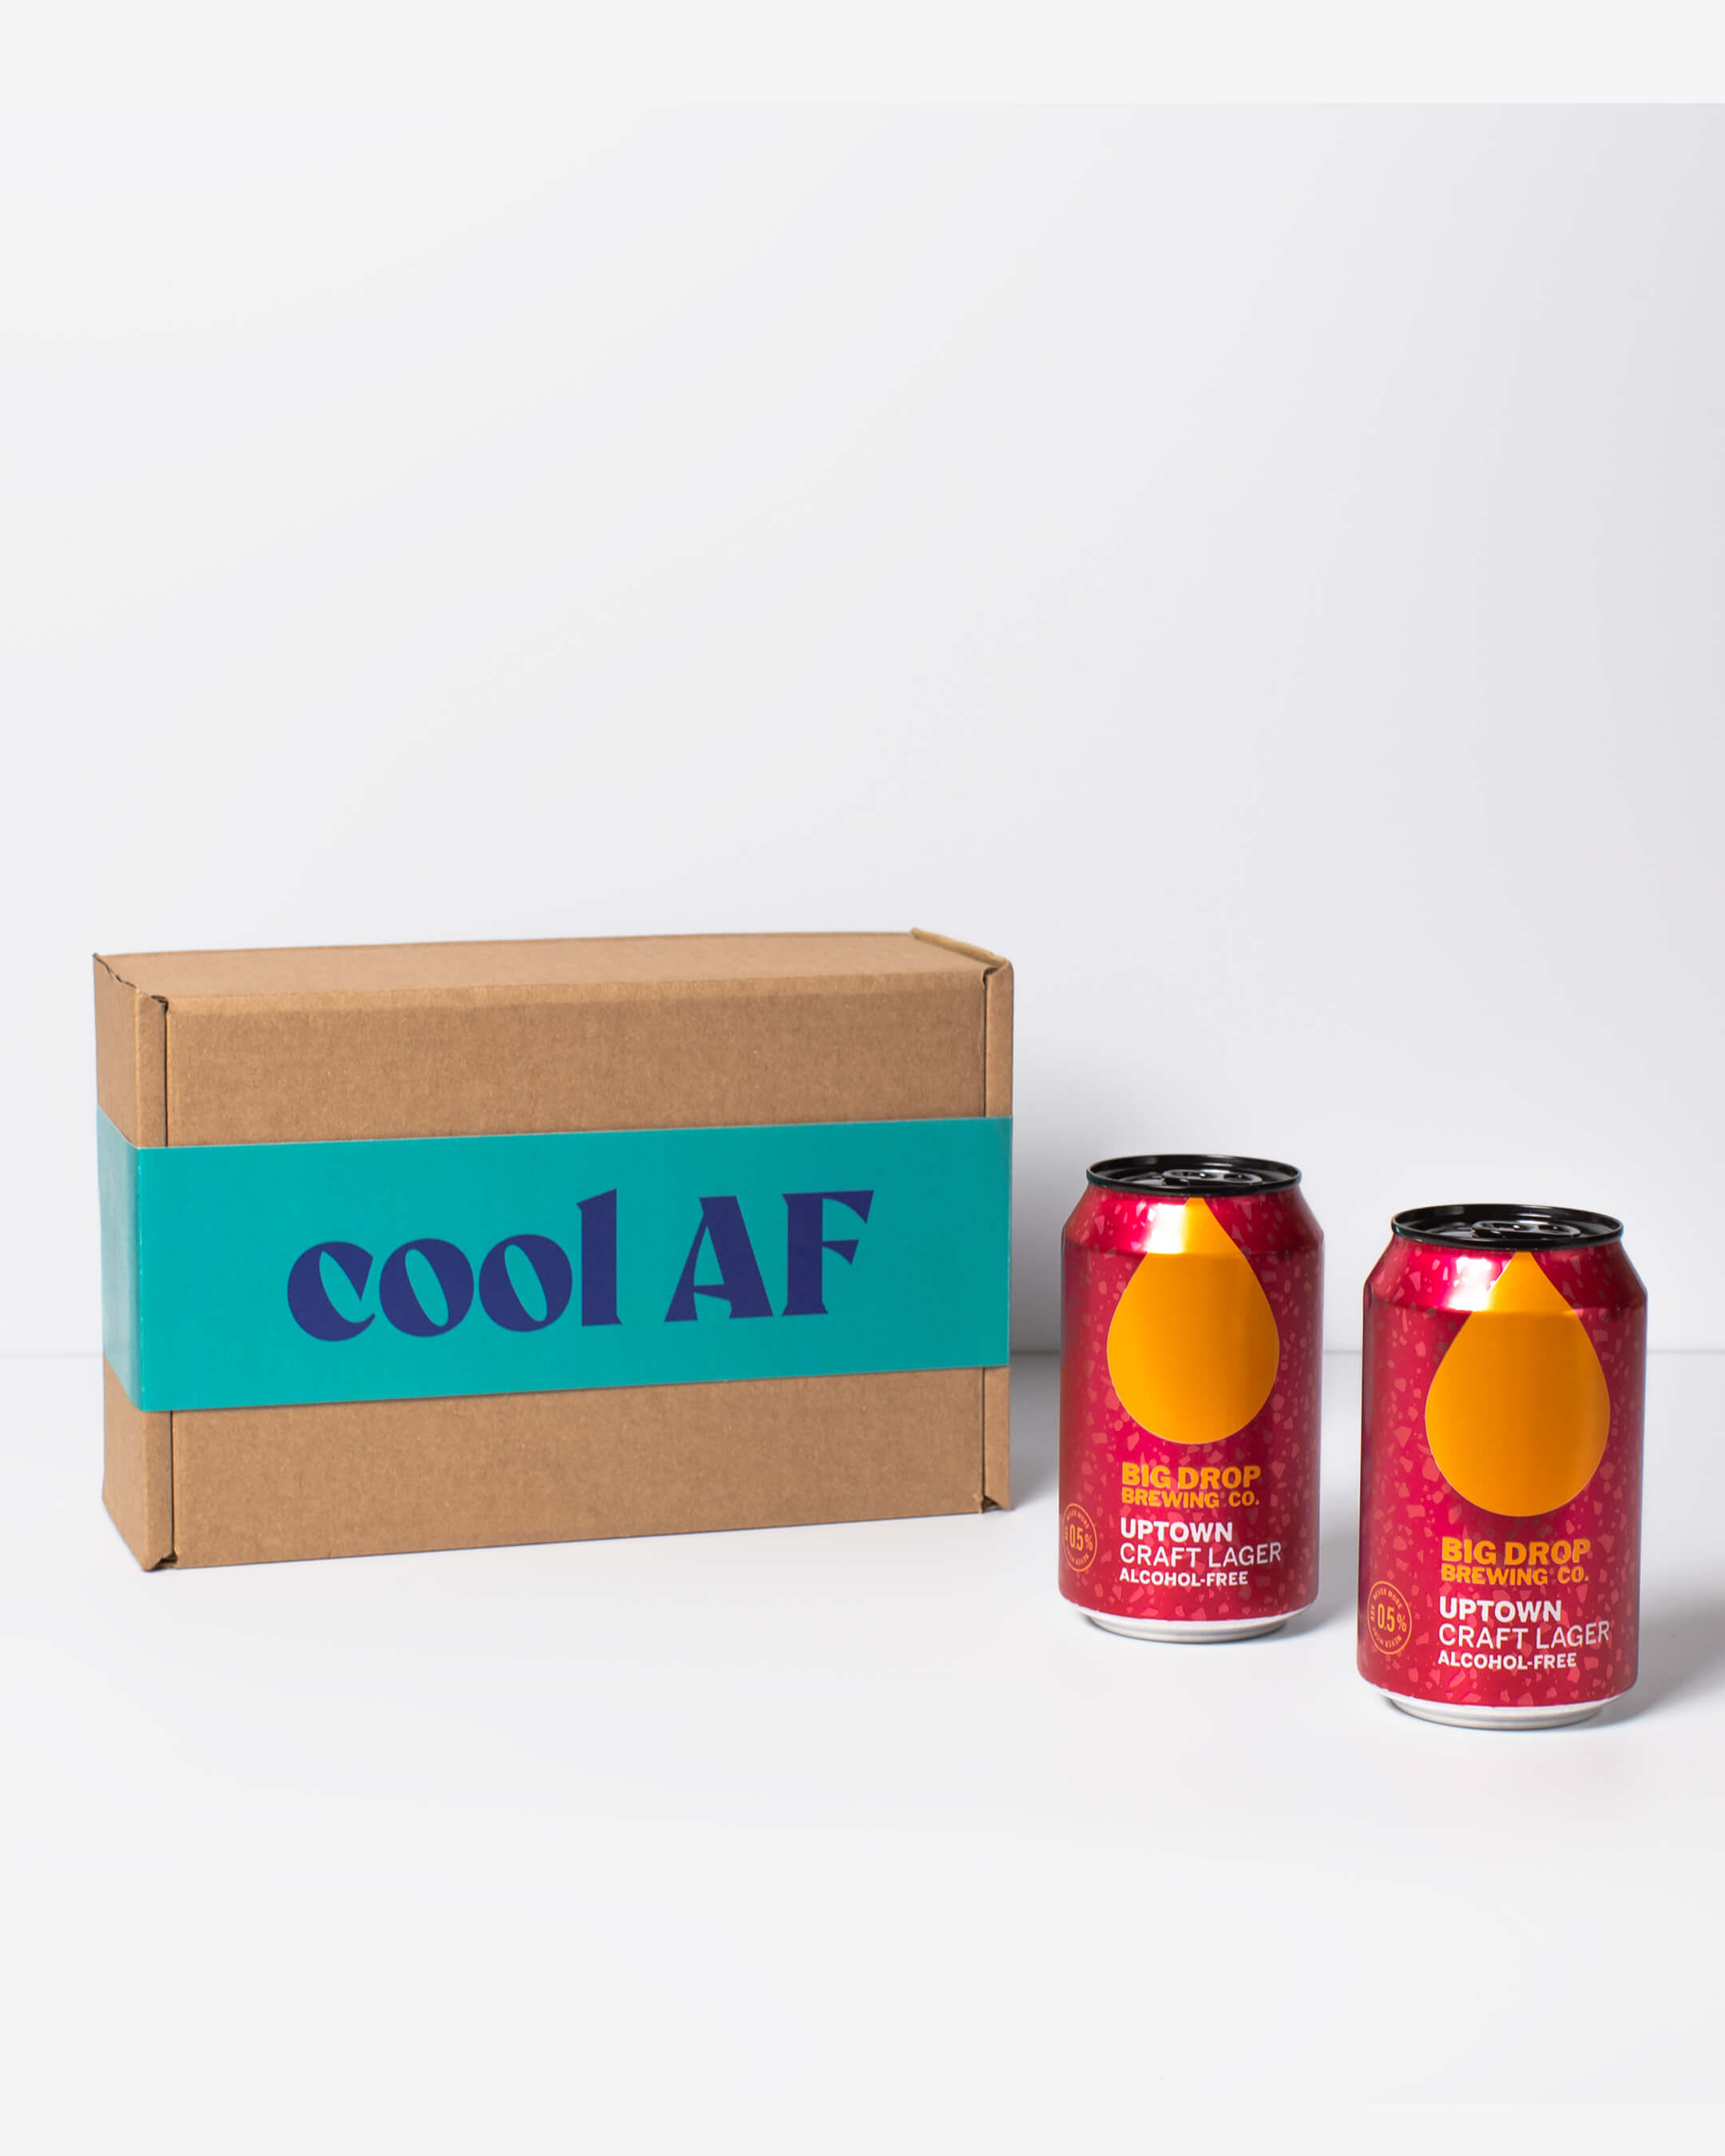 Big Drop alcohol free lager cans & ta. box